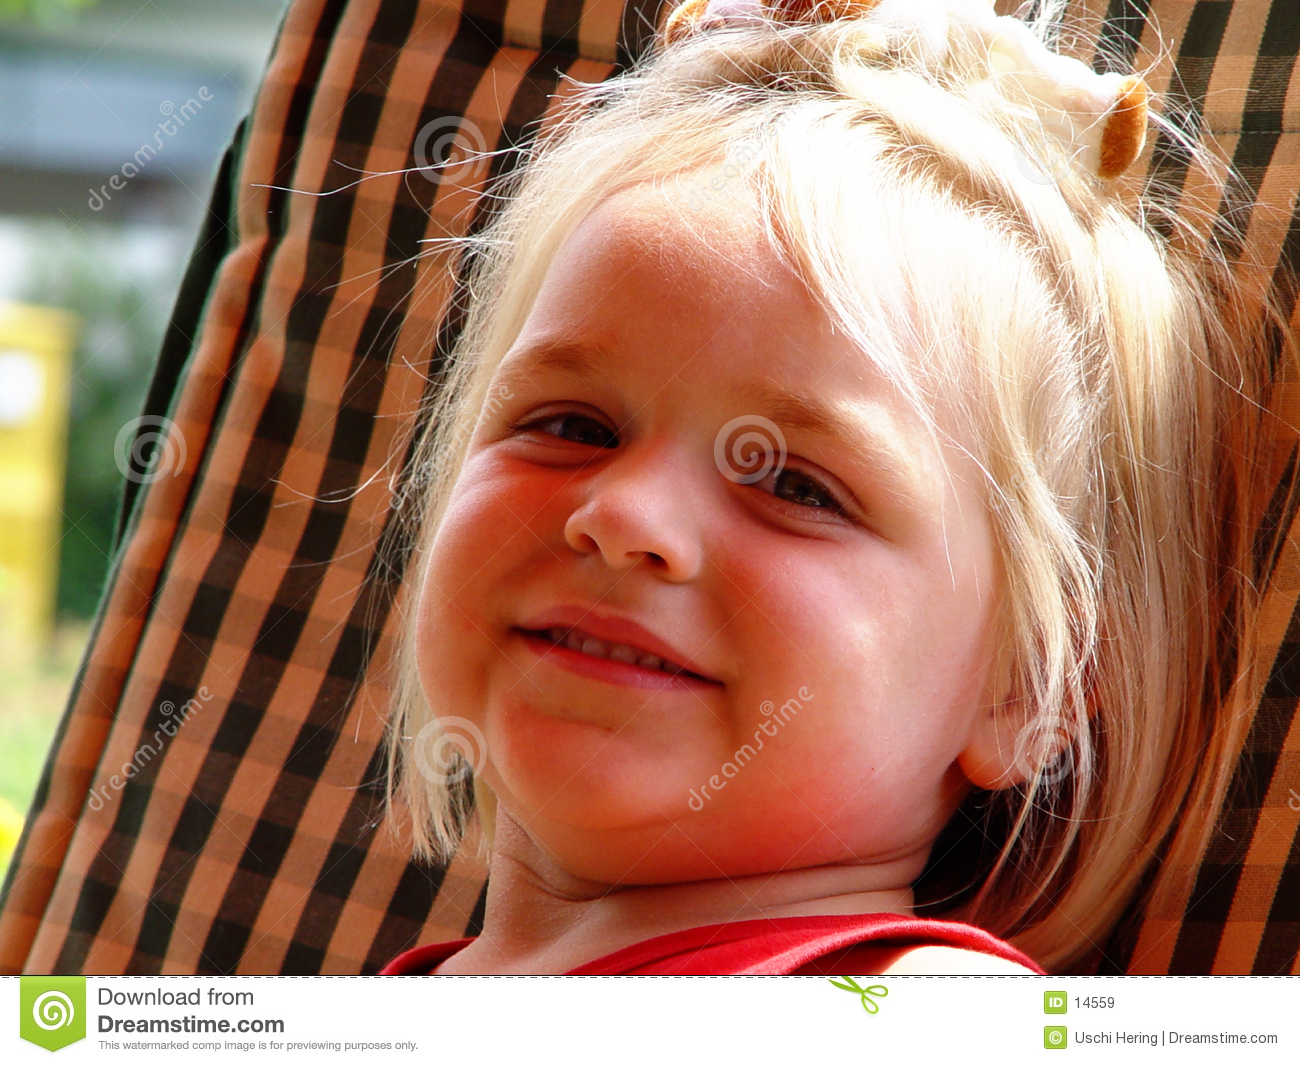 Fille, souriant